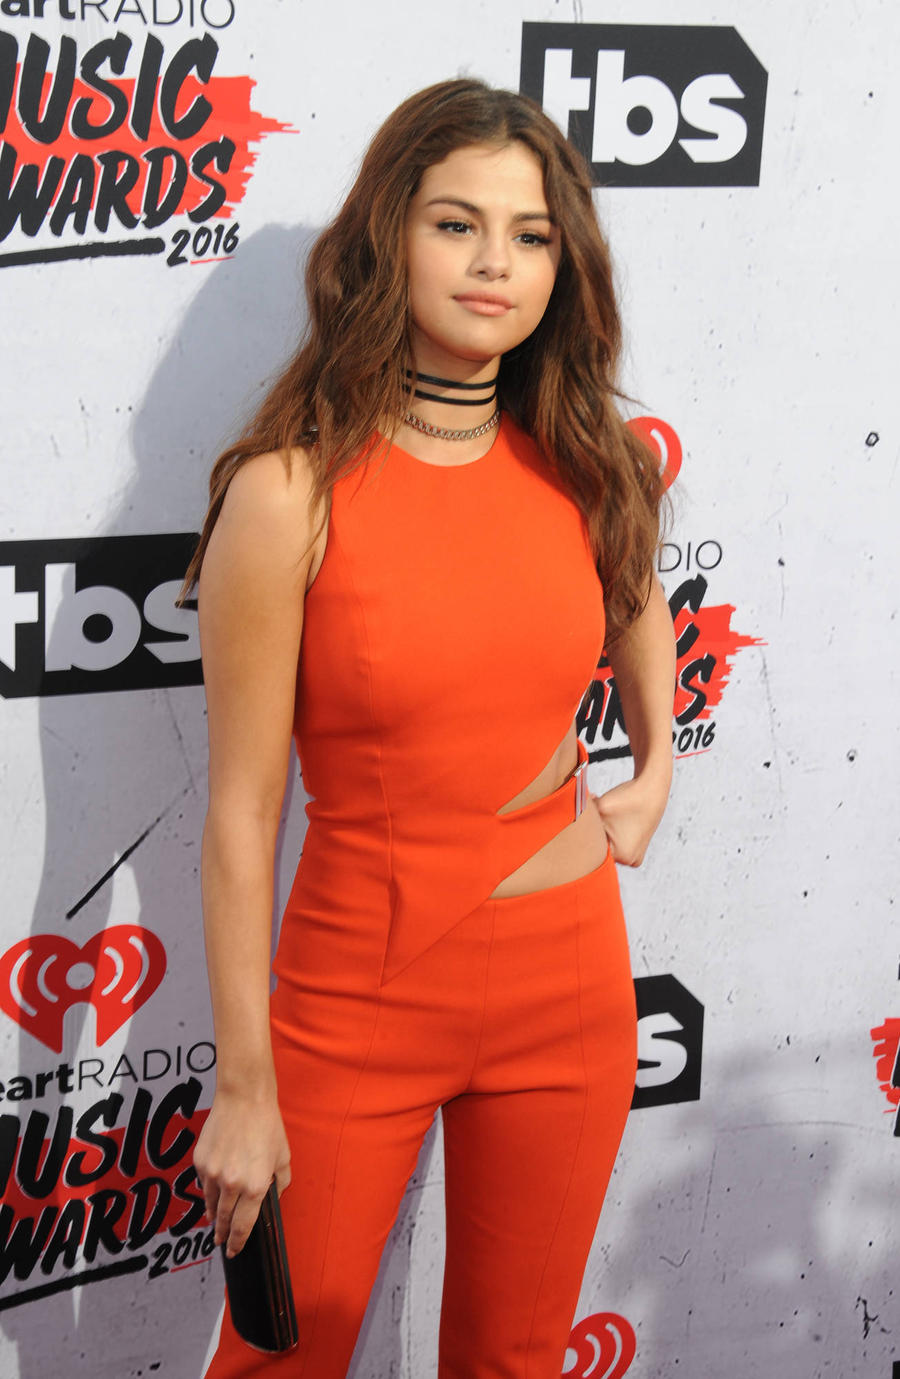 Selena Gomez Frustrated By Media's Rehab 'Fixation'